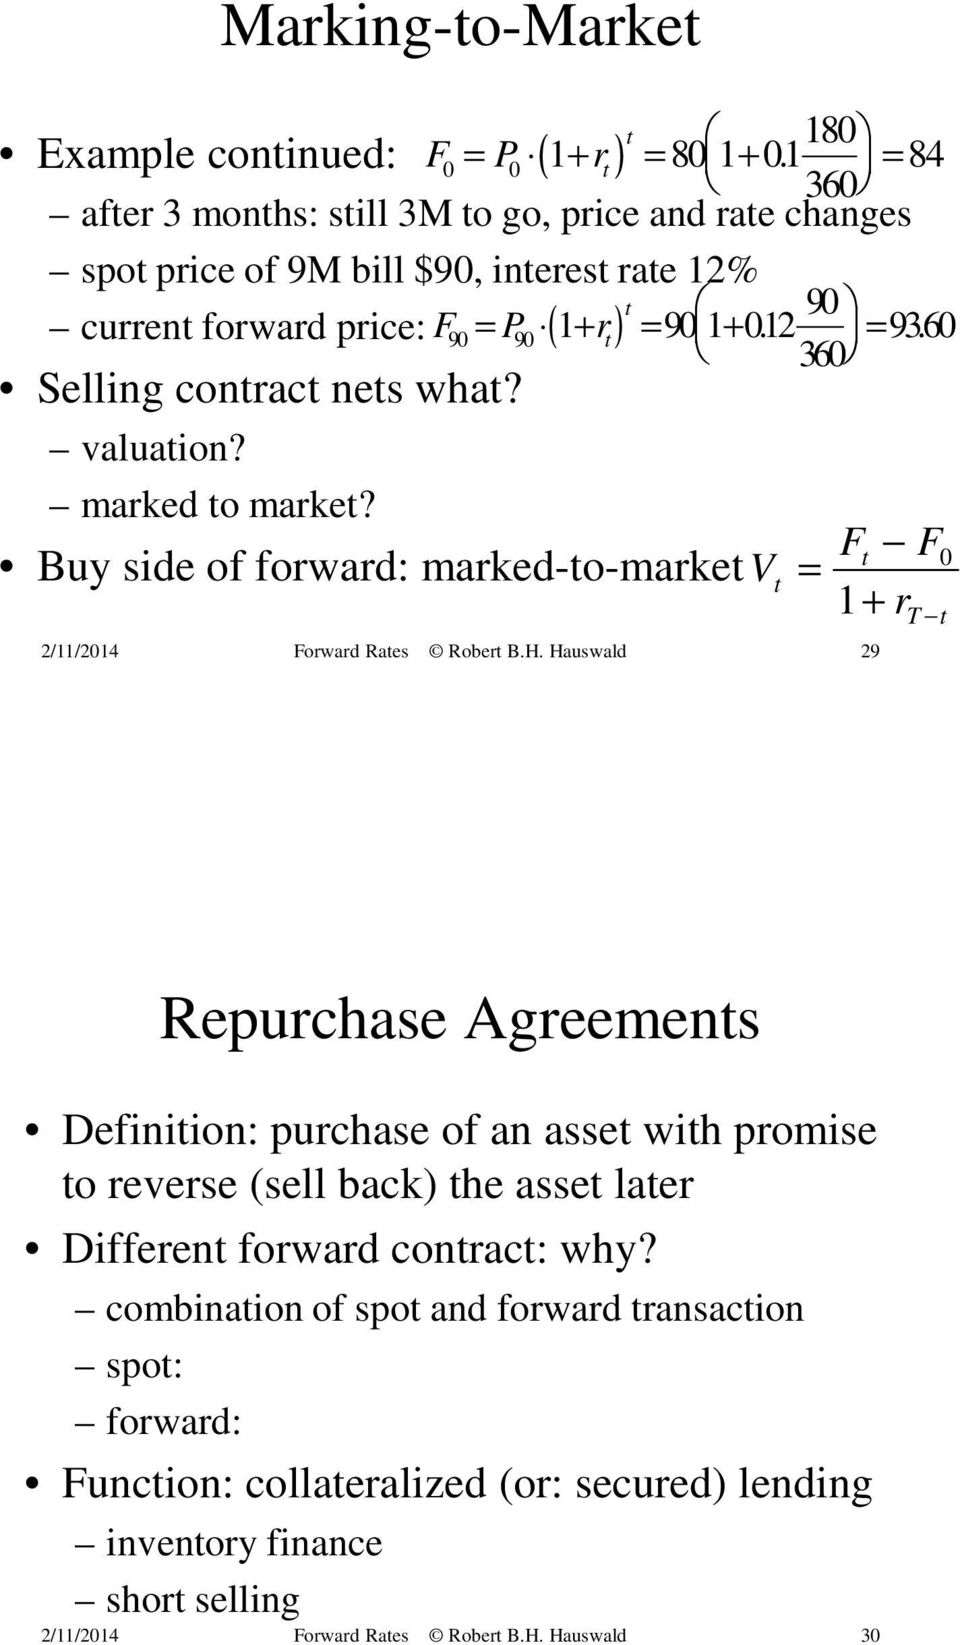 + = +. = 9360. 360 Selling contract nets what? valuation? marked to market?